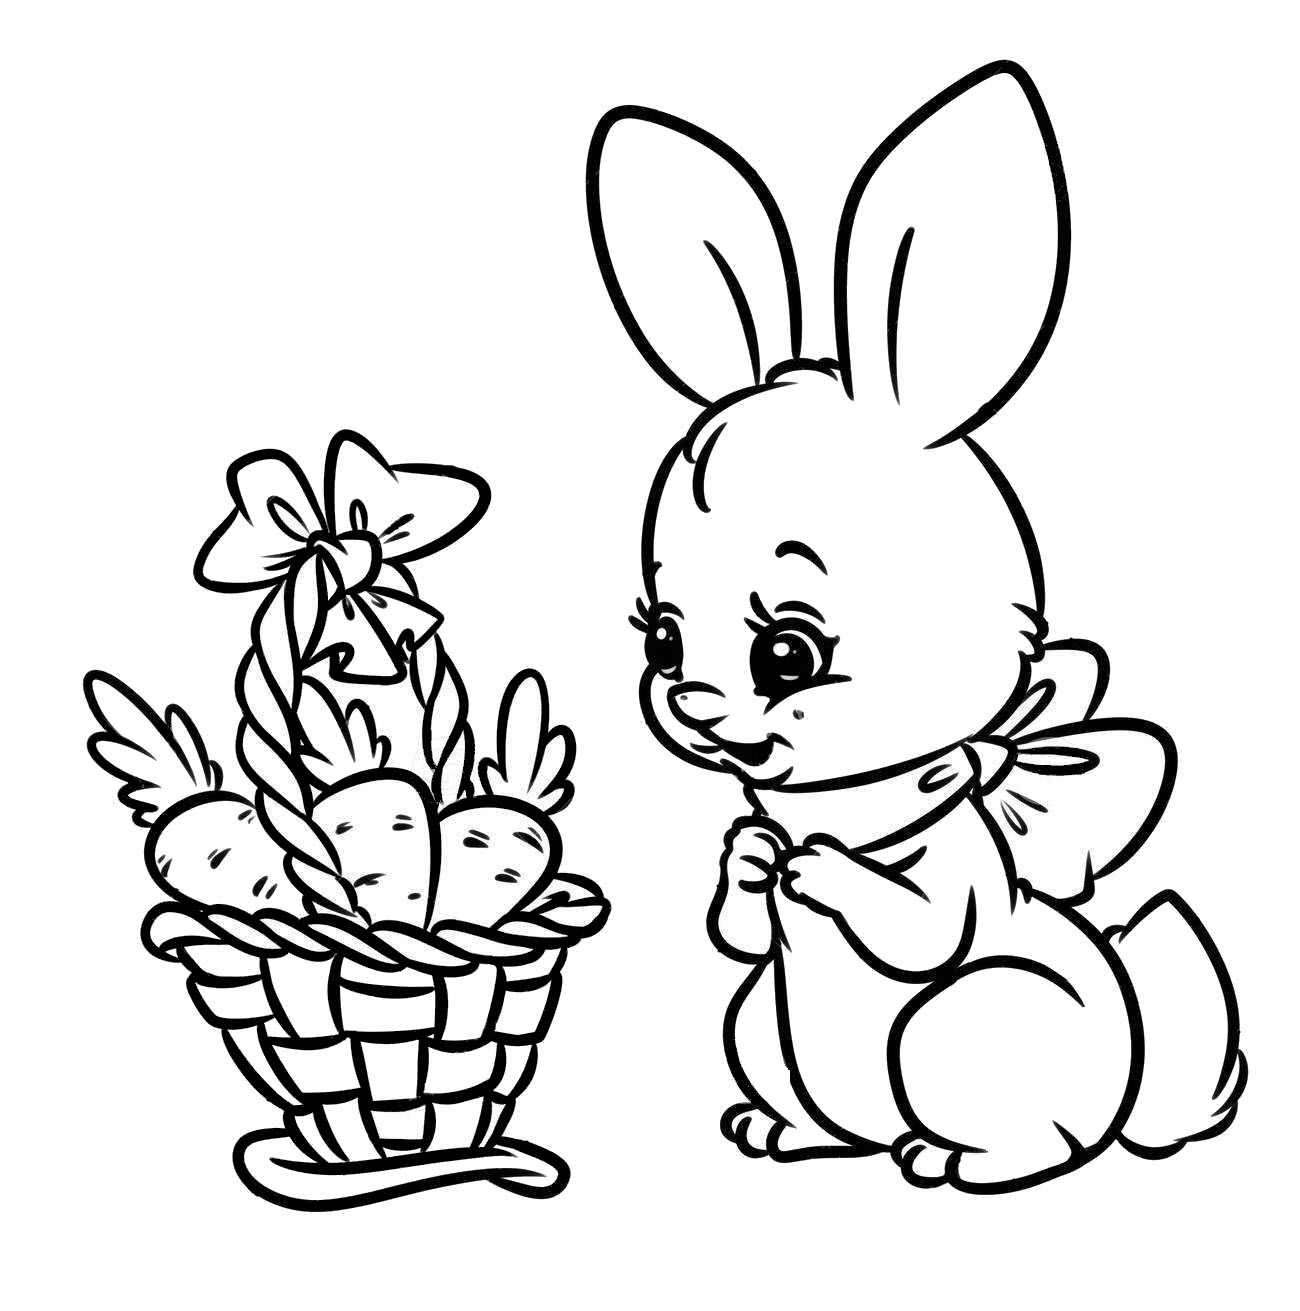 Carrot cute coloring page